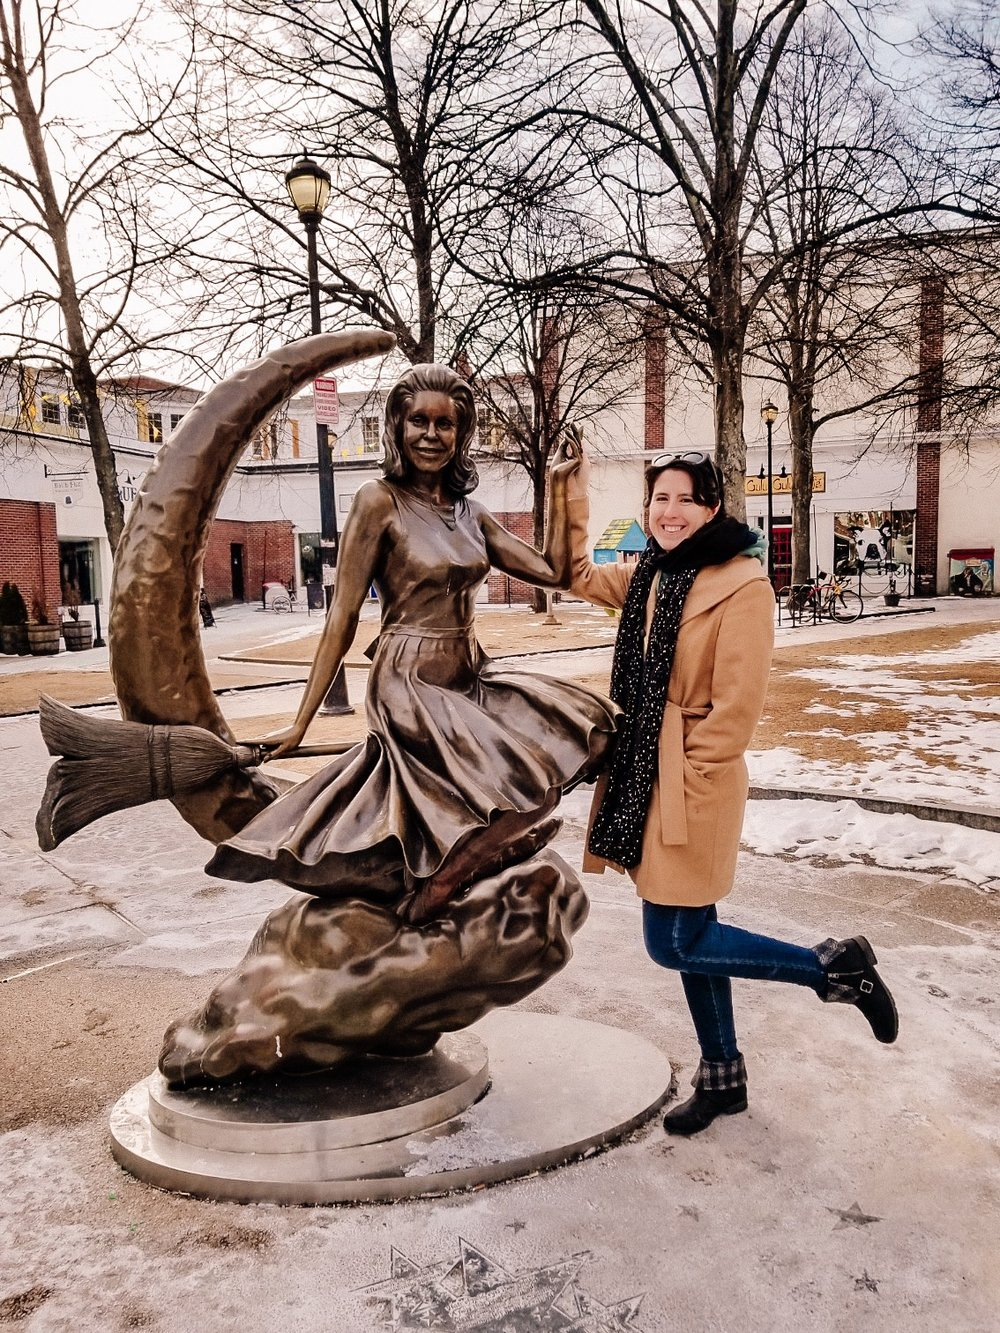 Standing with the Bewitched Statue in Salem, Massachusetts